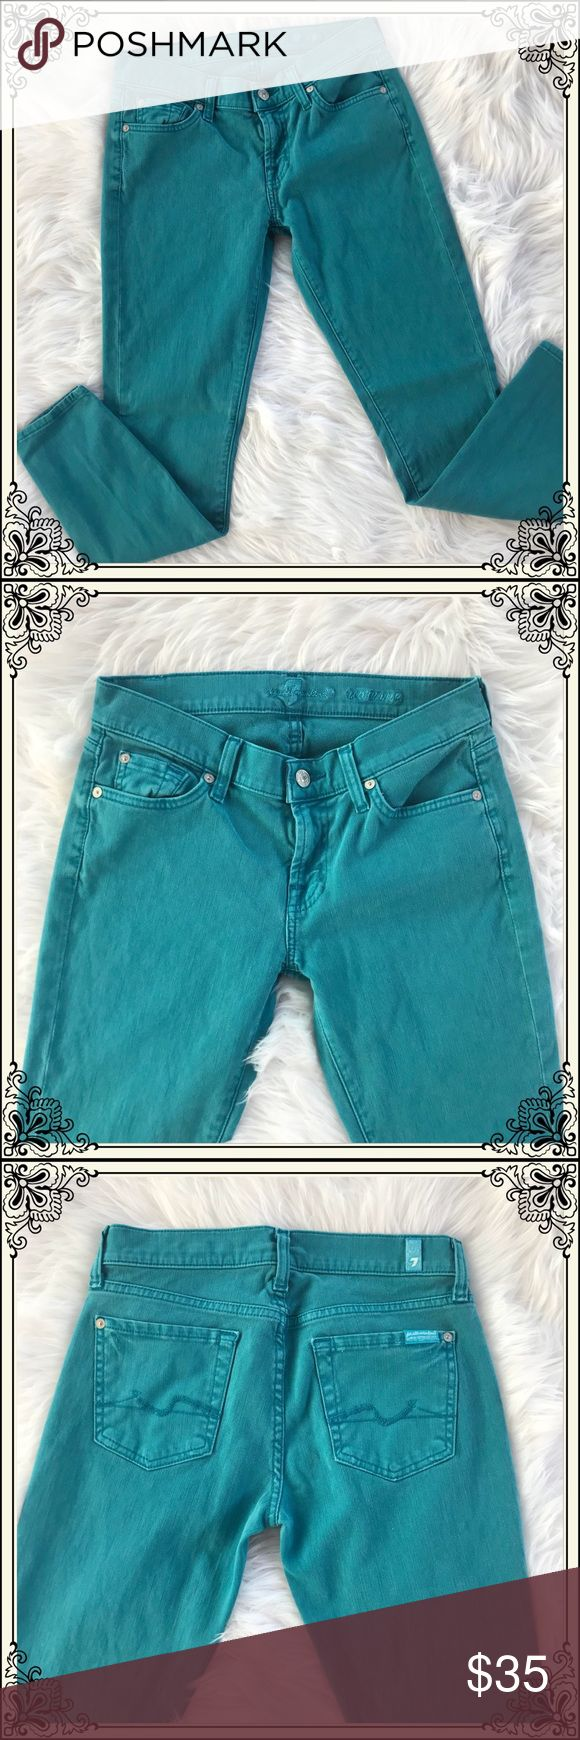 7 For All Mankind Teal Skinny Jeans #2224 These 7 For All Mankind Teal Jeans have a single Button and zipper fly and are 5% Spandex. They have a skinny leggings style to them. In great condition. 7 For All Mankind Jeans Skinny